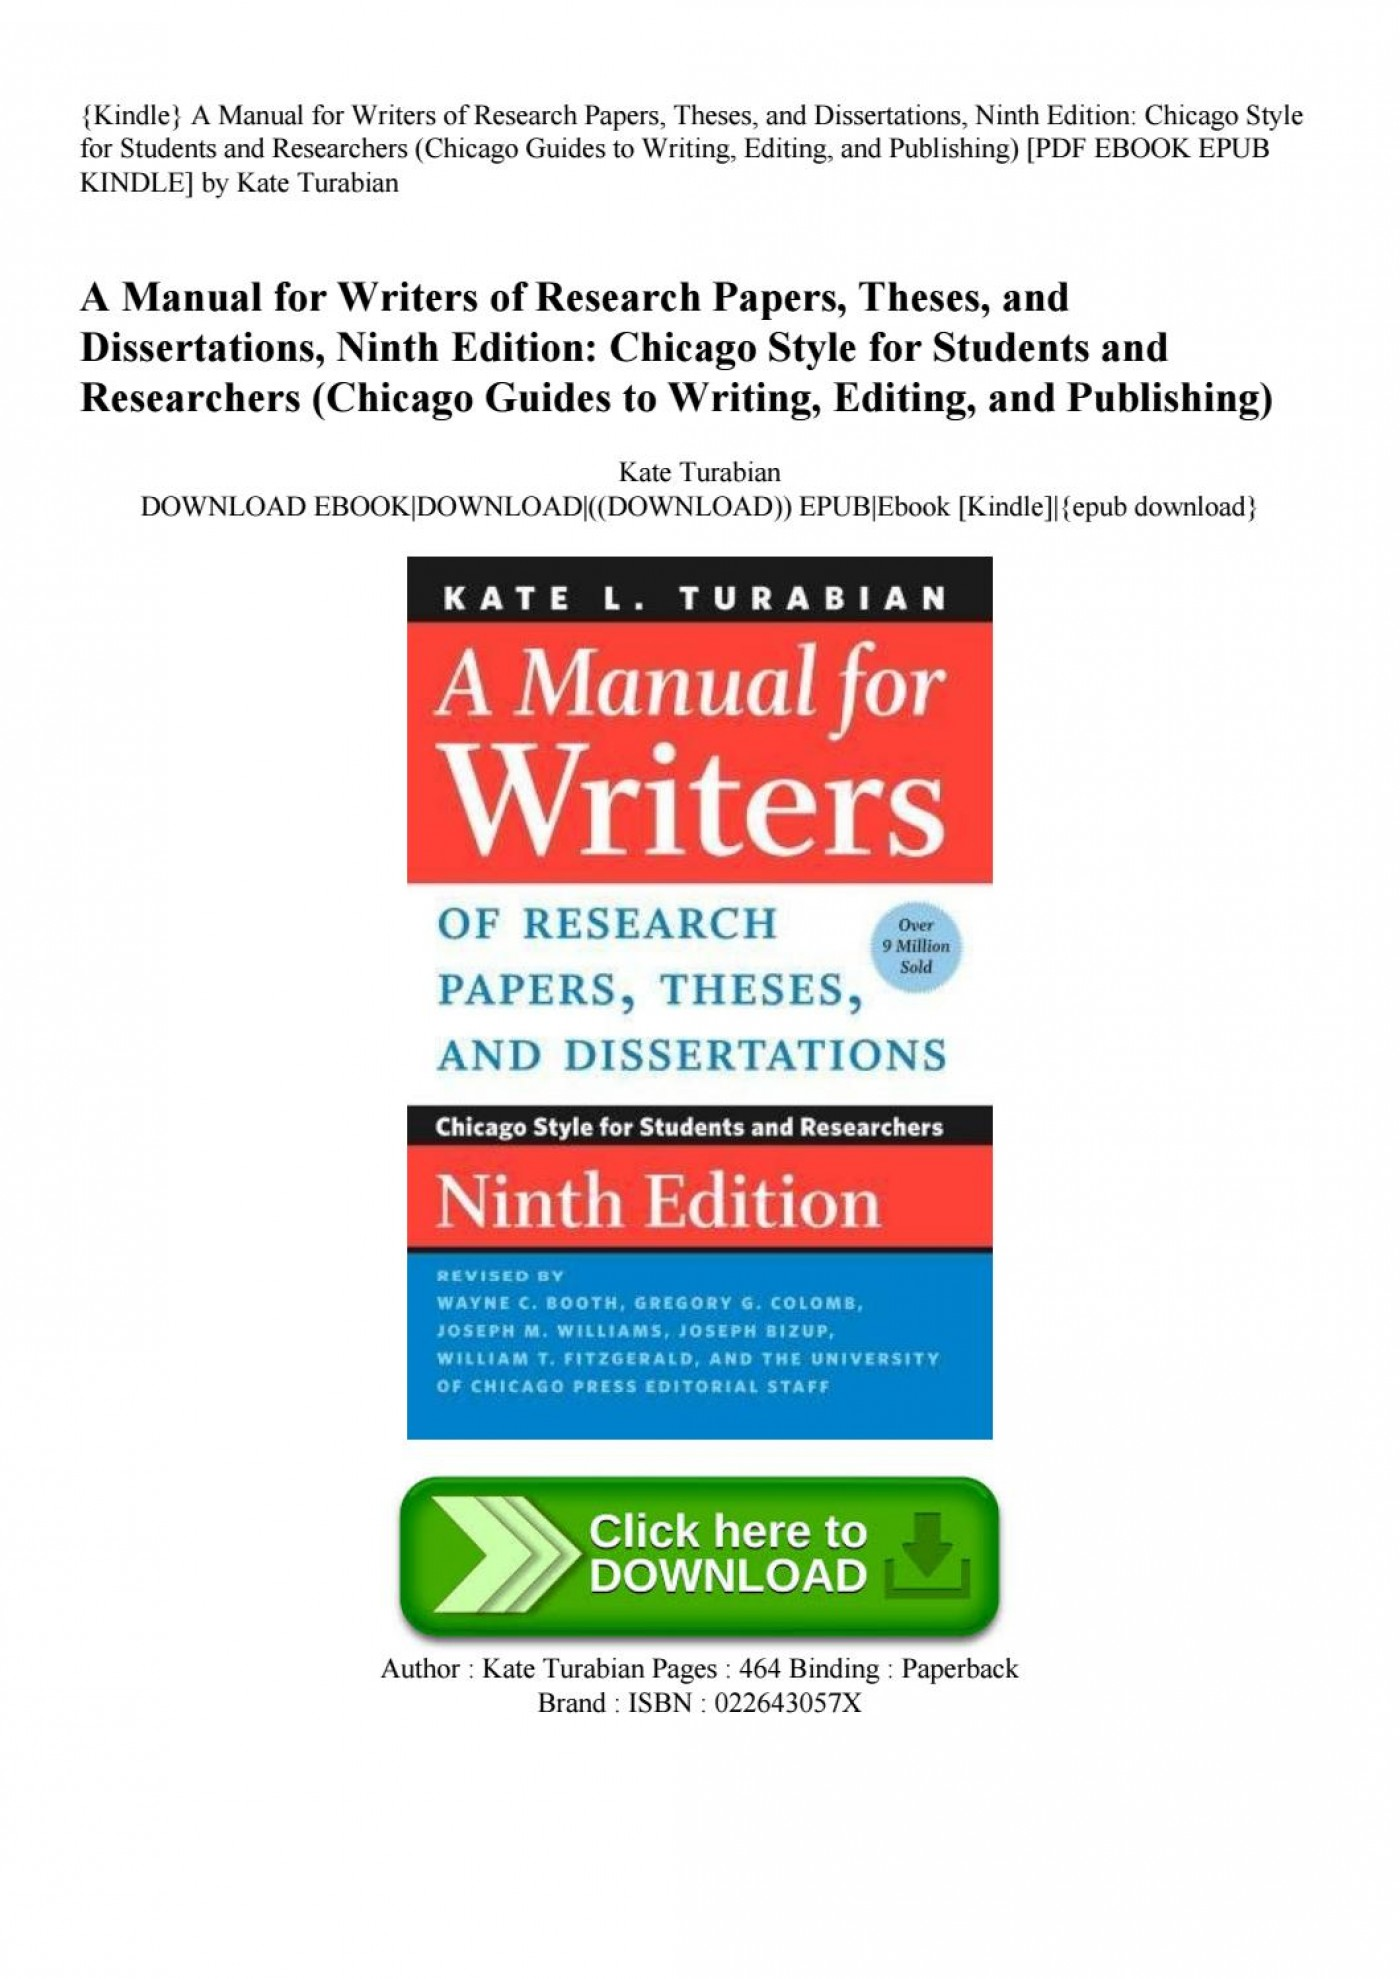 012 Research Paper Manual For Writers Of Papers Theses And Dissertations Page 1 Magnificent A Amazon 9th Edition Pdf 8th 13 1400